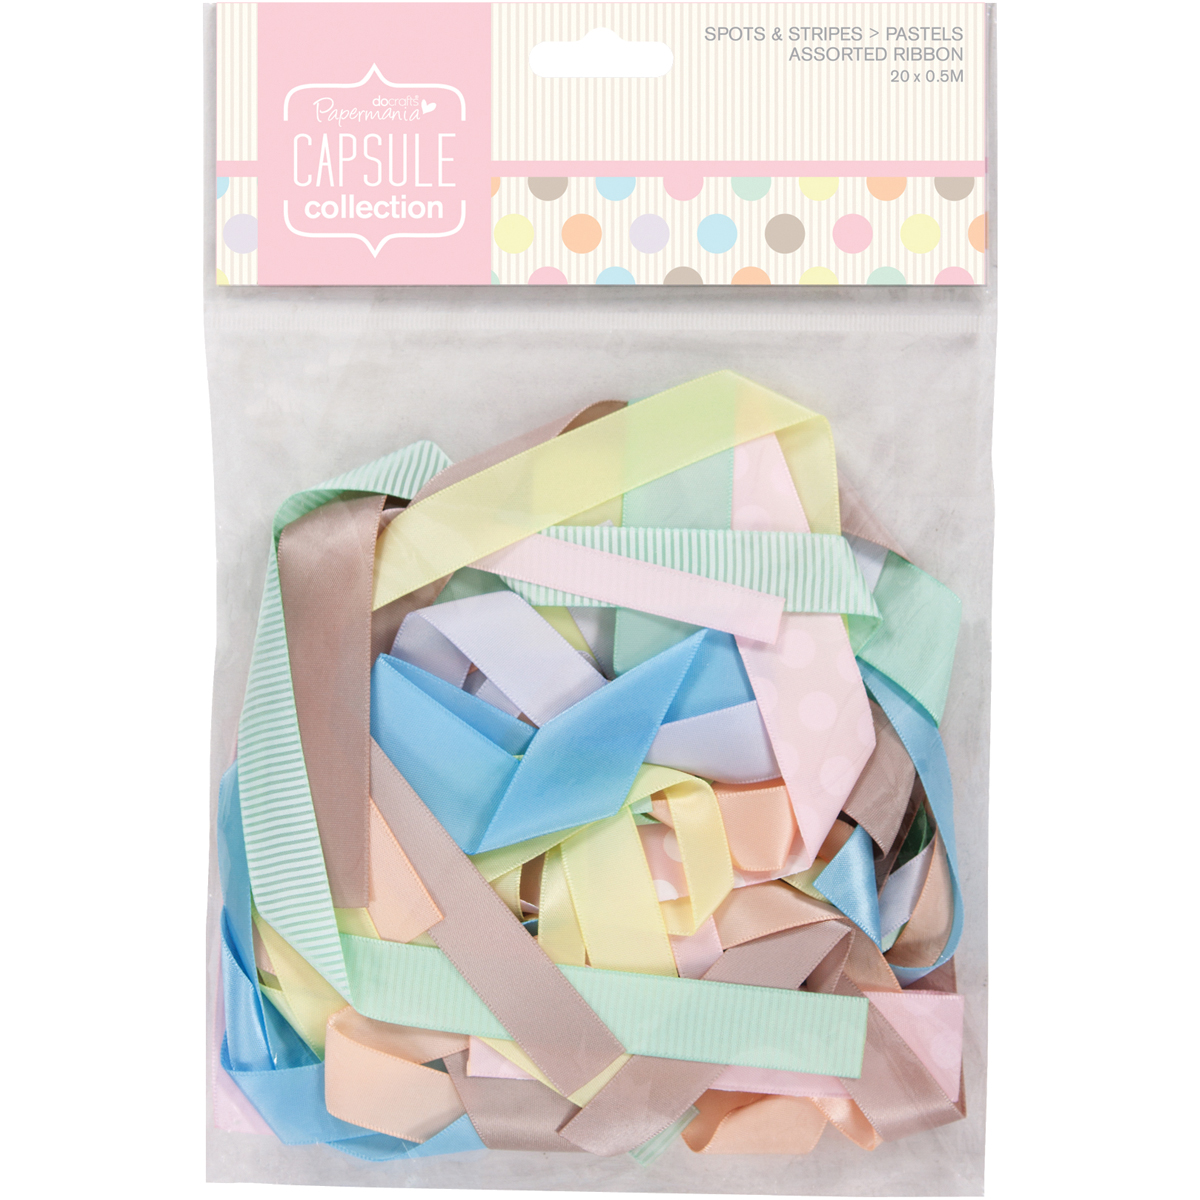 Docrafts Papermania Spots/Stripes Pastel Ribbon Assorted Prints & Solids